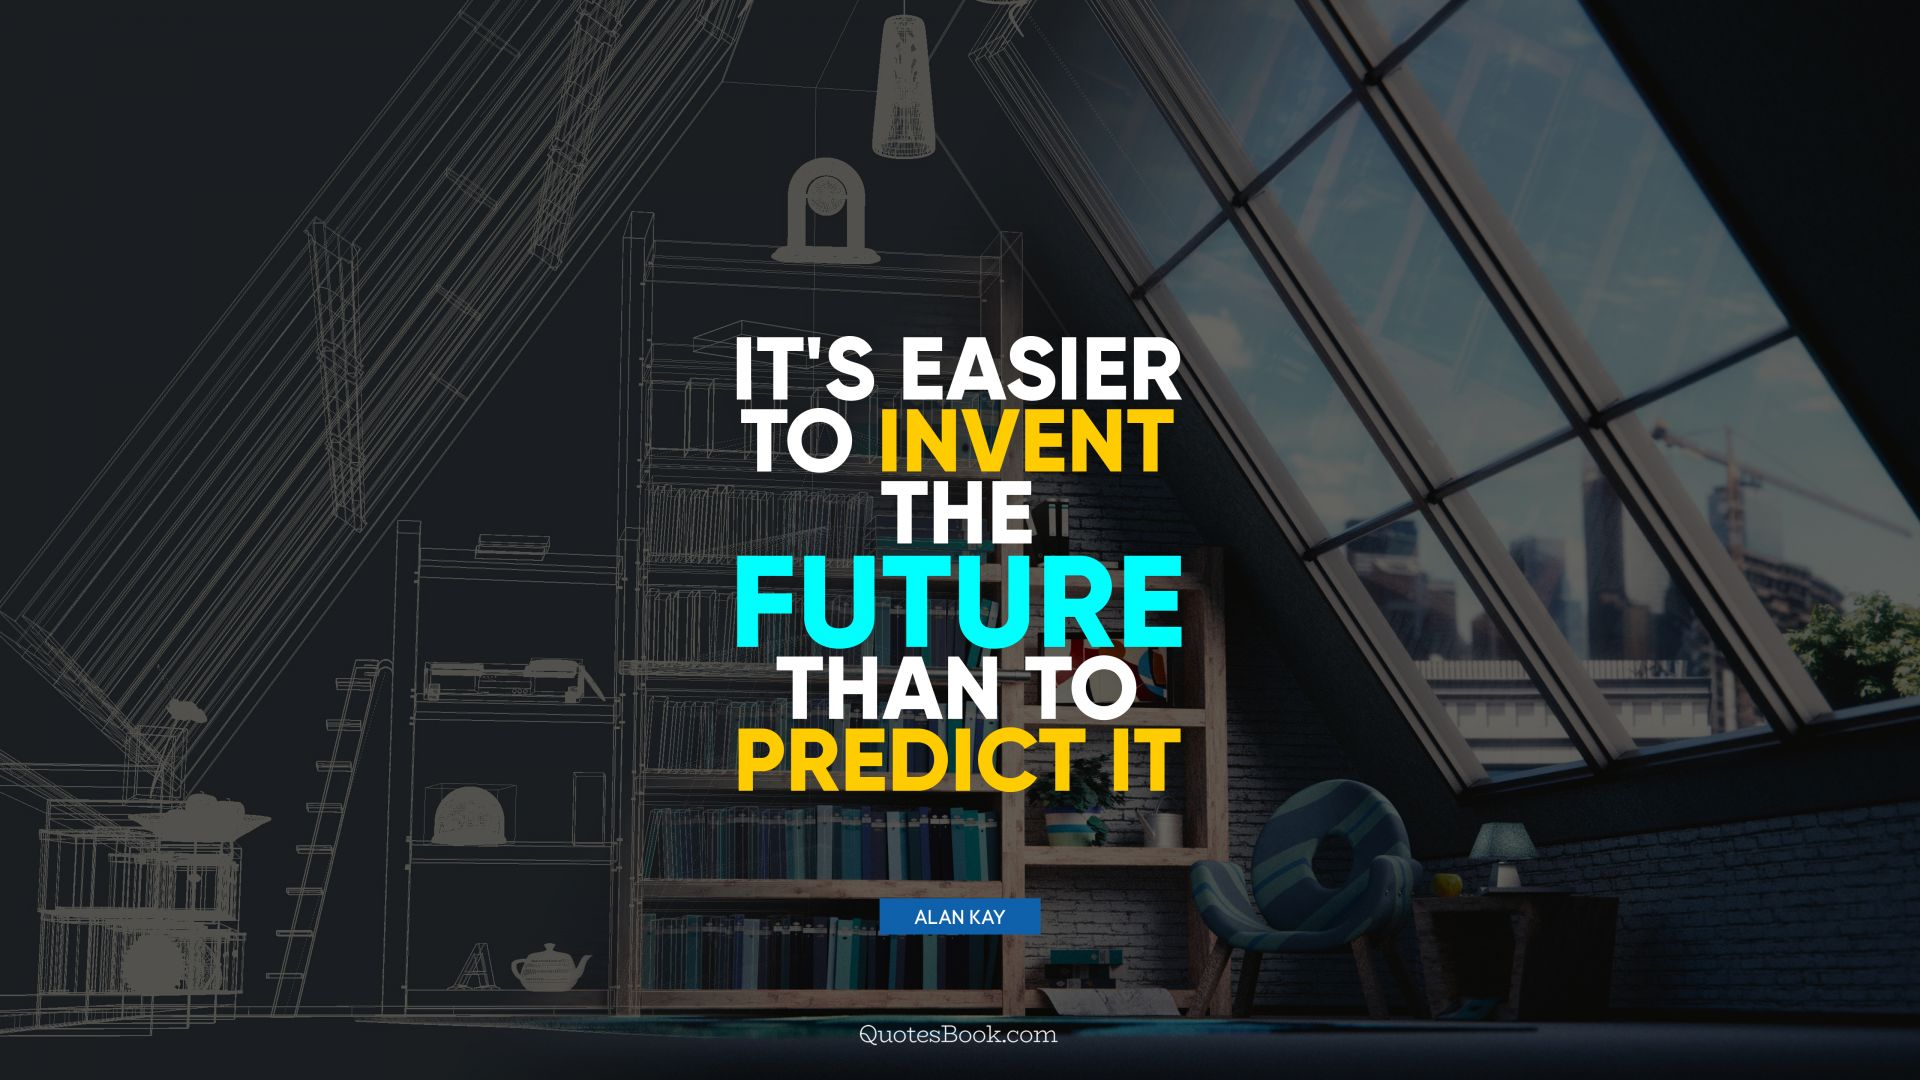 It's easier to invent the future than to predict it. - Quote by Alan Kay